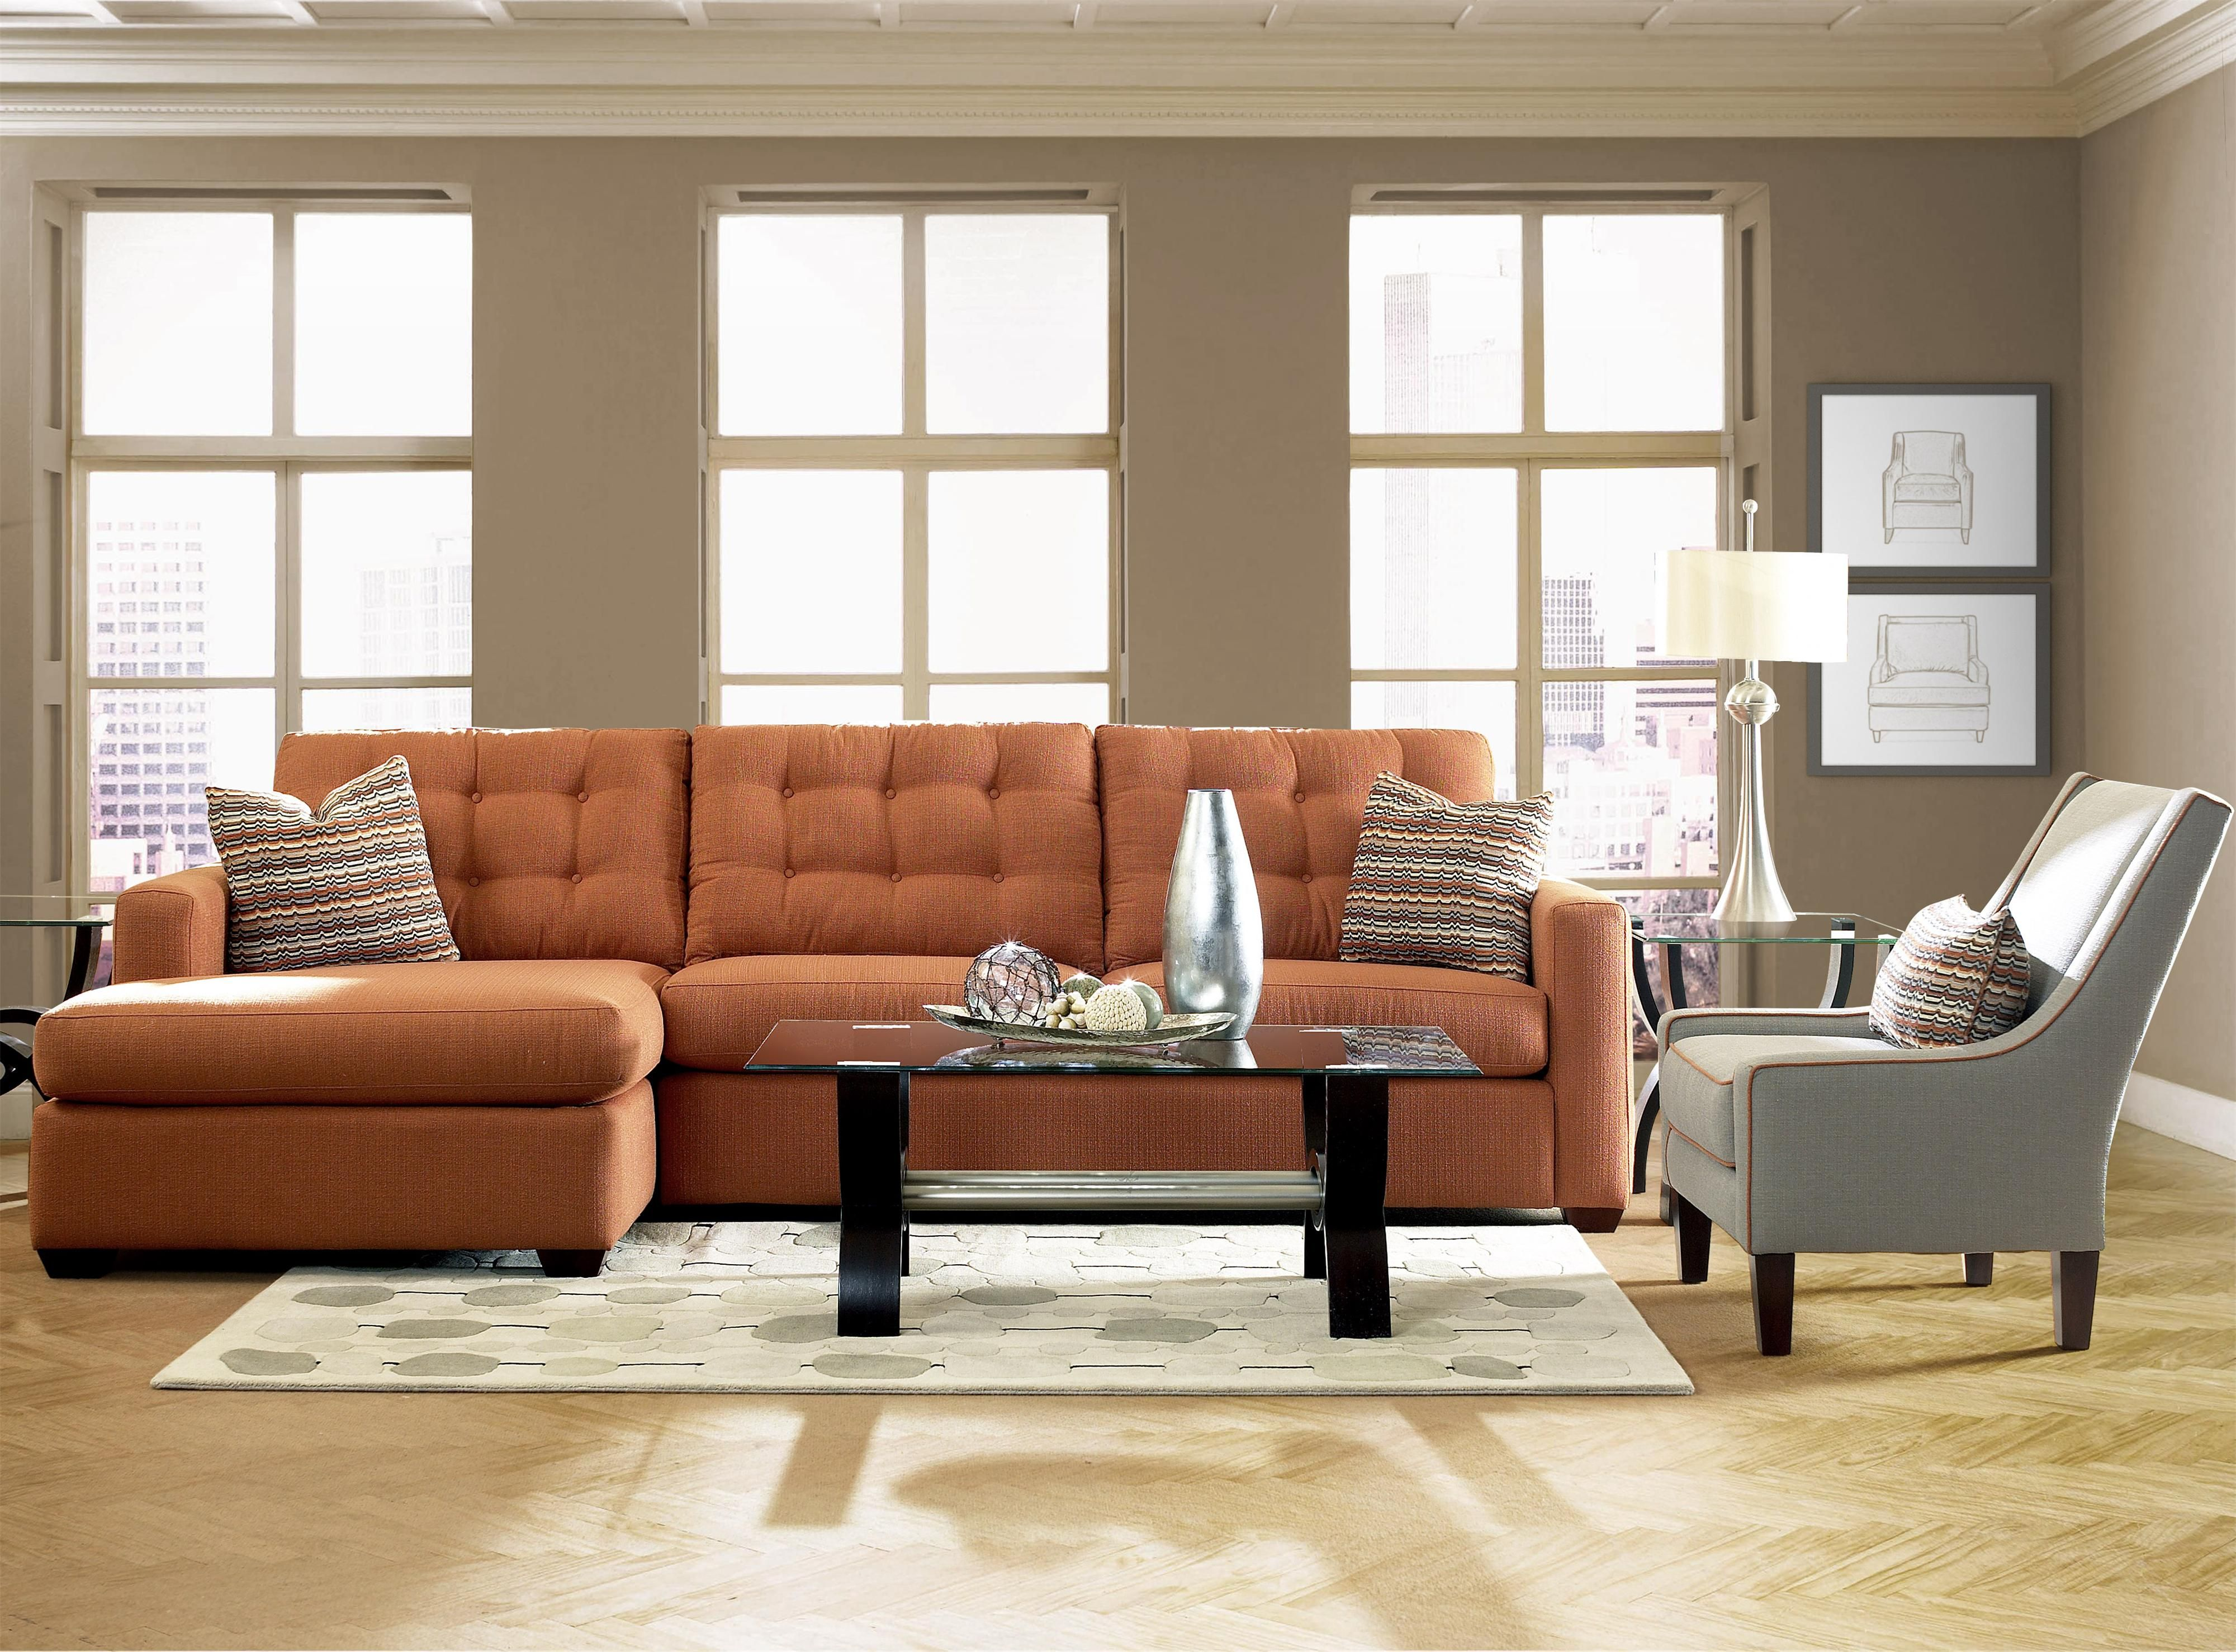 Fantastic Lido Casual Sectional Sofa With Chaise Lounge By Klaussner Frankydiablos Diy Chair Ideas Frankydiabloscom